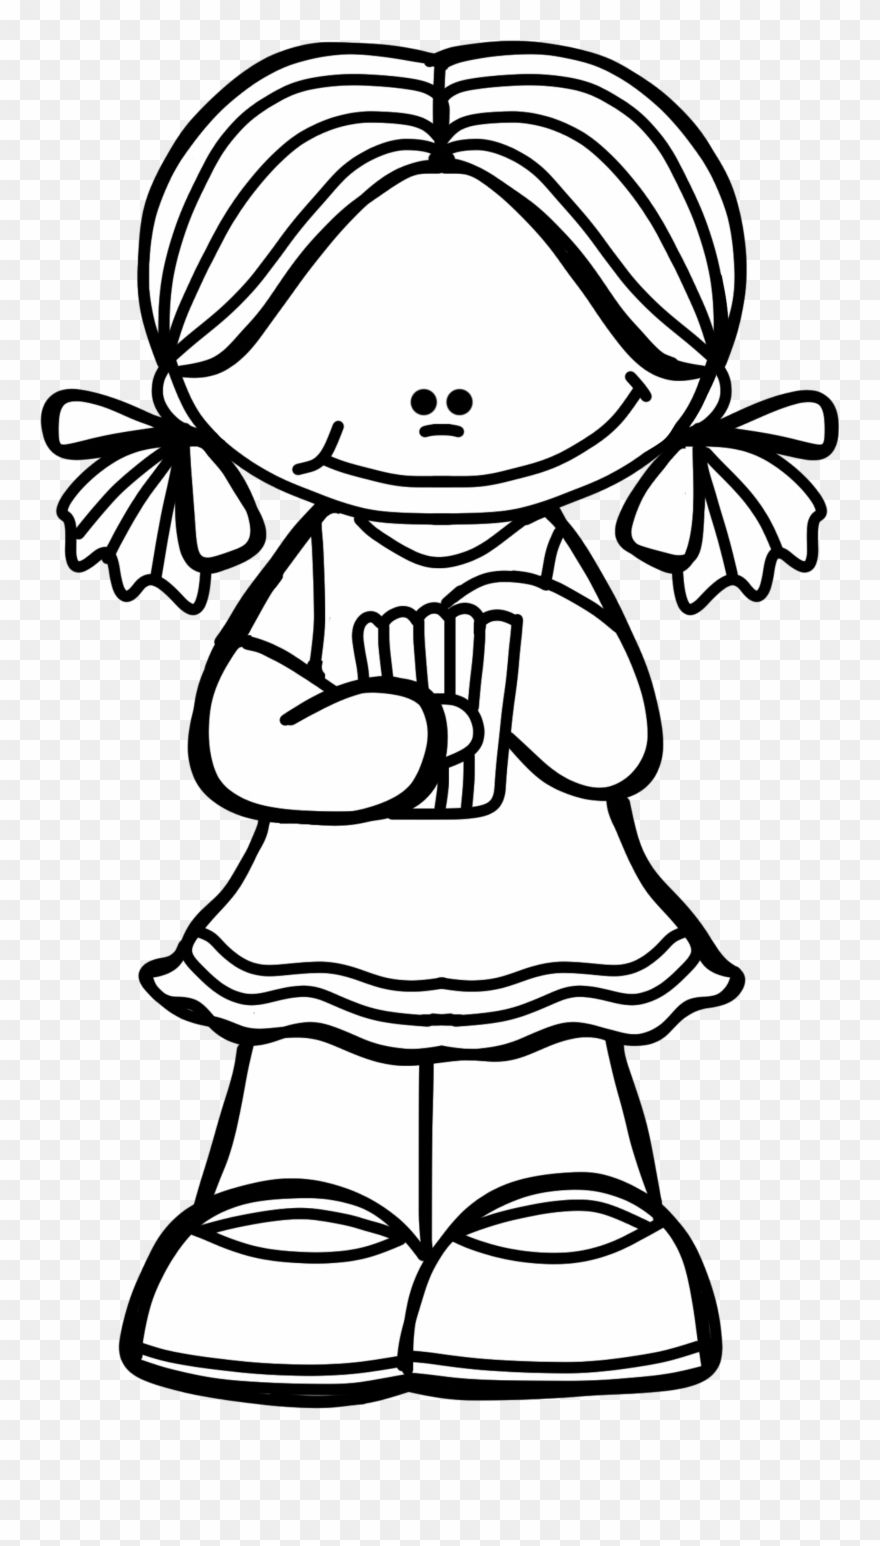 Download Hd Carson Dellosa Black And White Clipart Png Download And Use The Free Clipart For Your Creative Project Clip Art Free Clip Art Cute Doodles